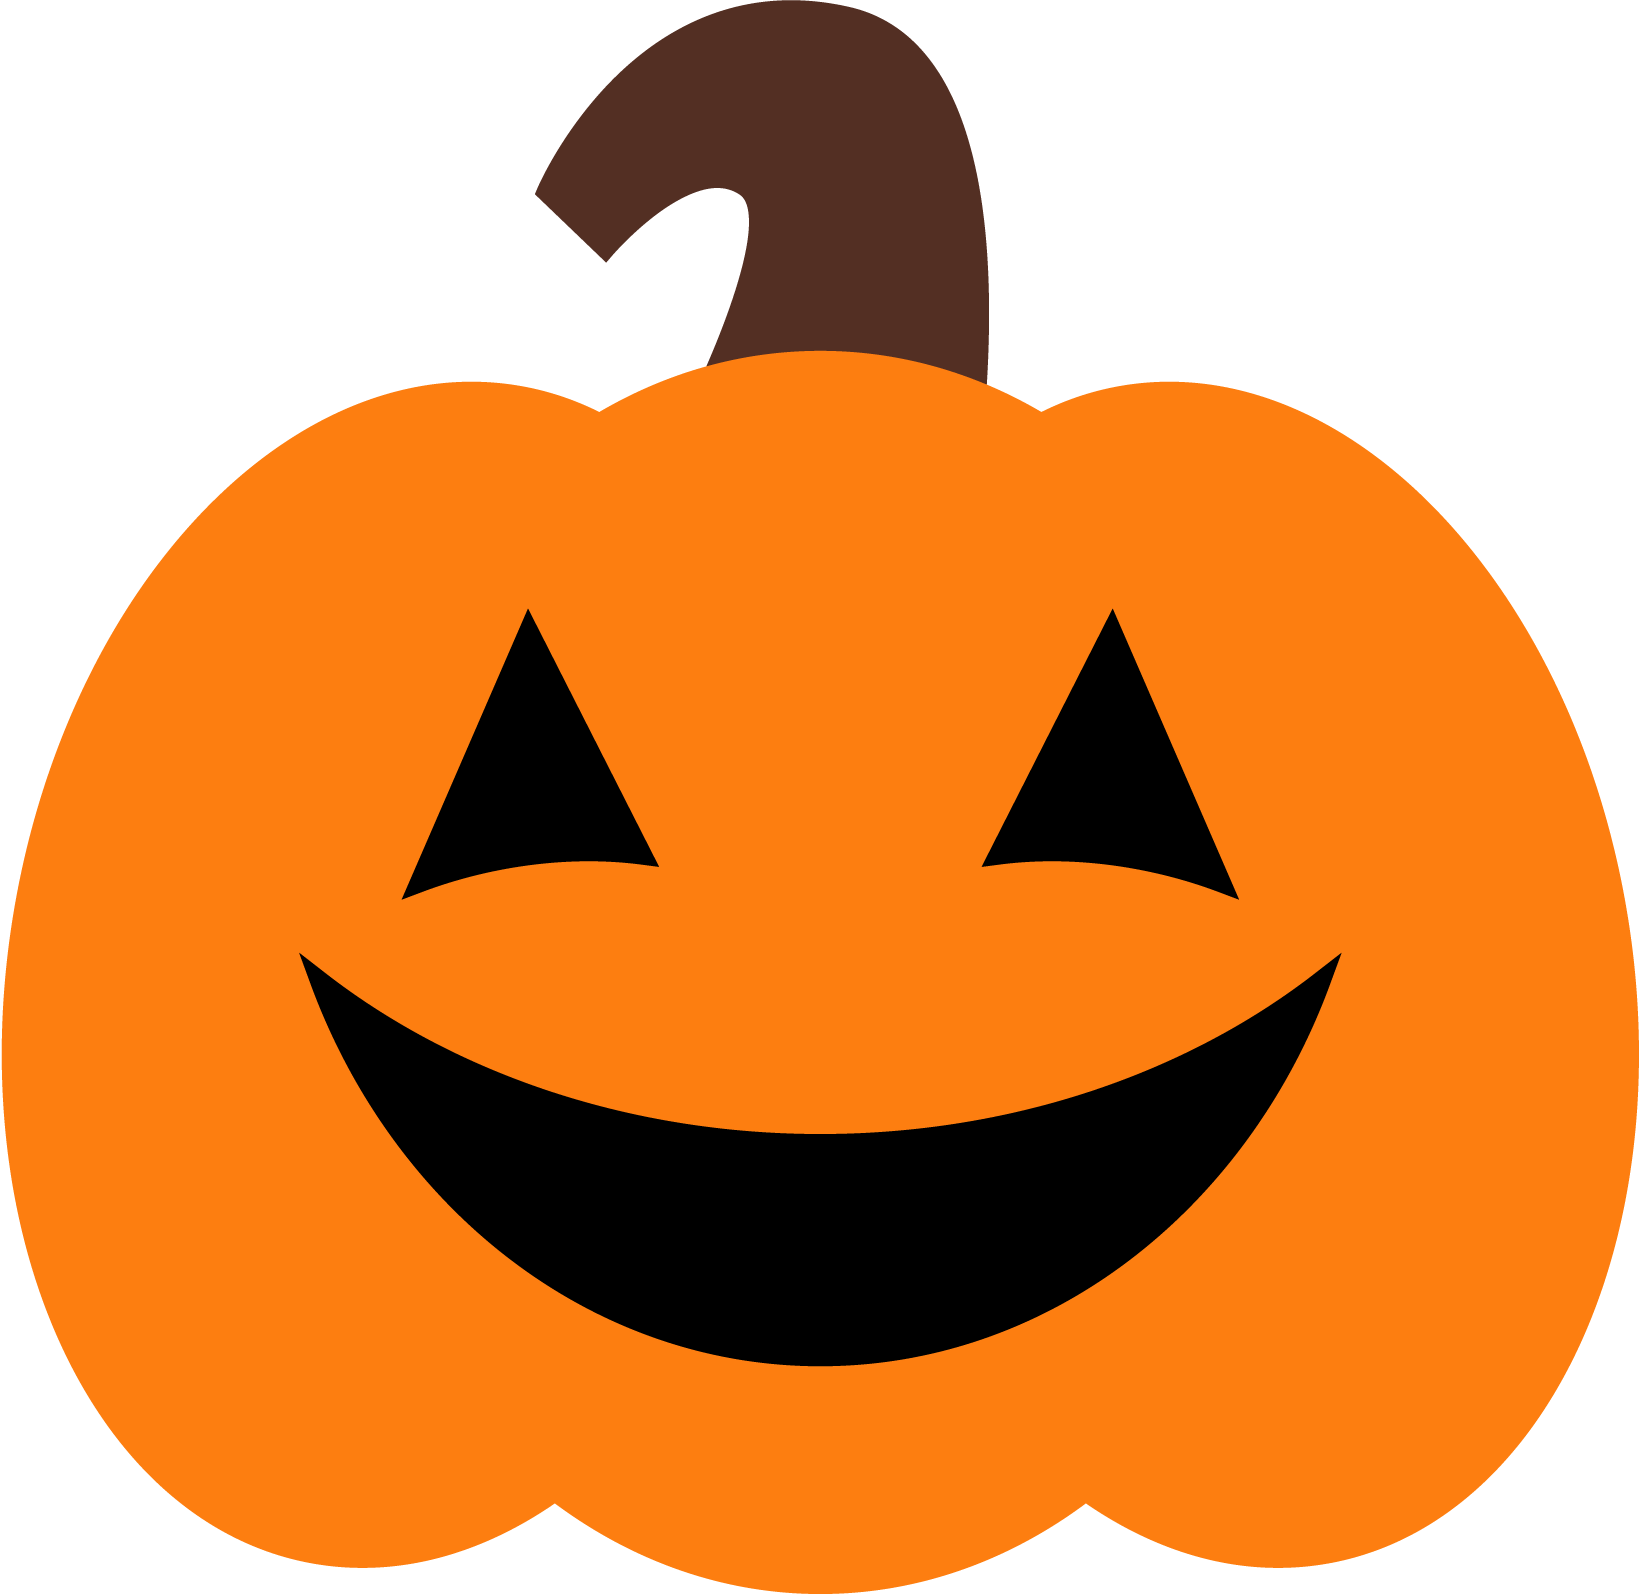 Cute Pumpkin Clipart - Clipart Kid